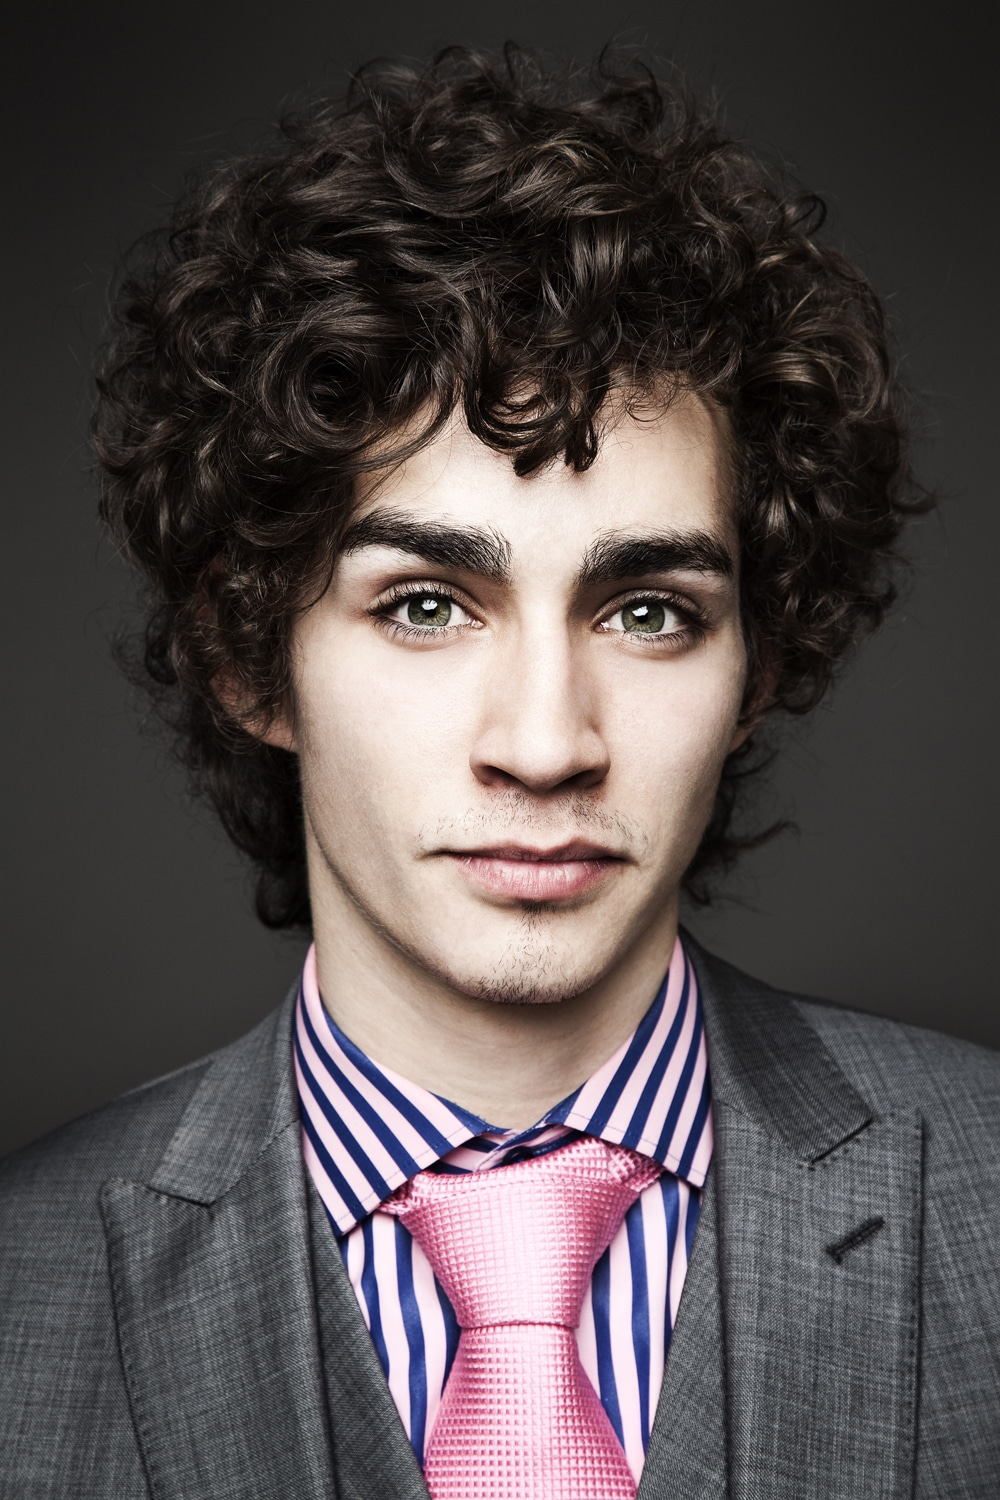 ROBERT SHEEHAN. PHOTOGRAPHED BY BARRY MCCALL FOR PHO20GRAPHY